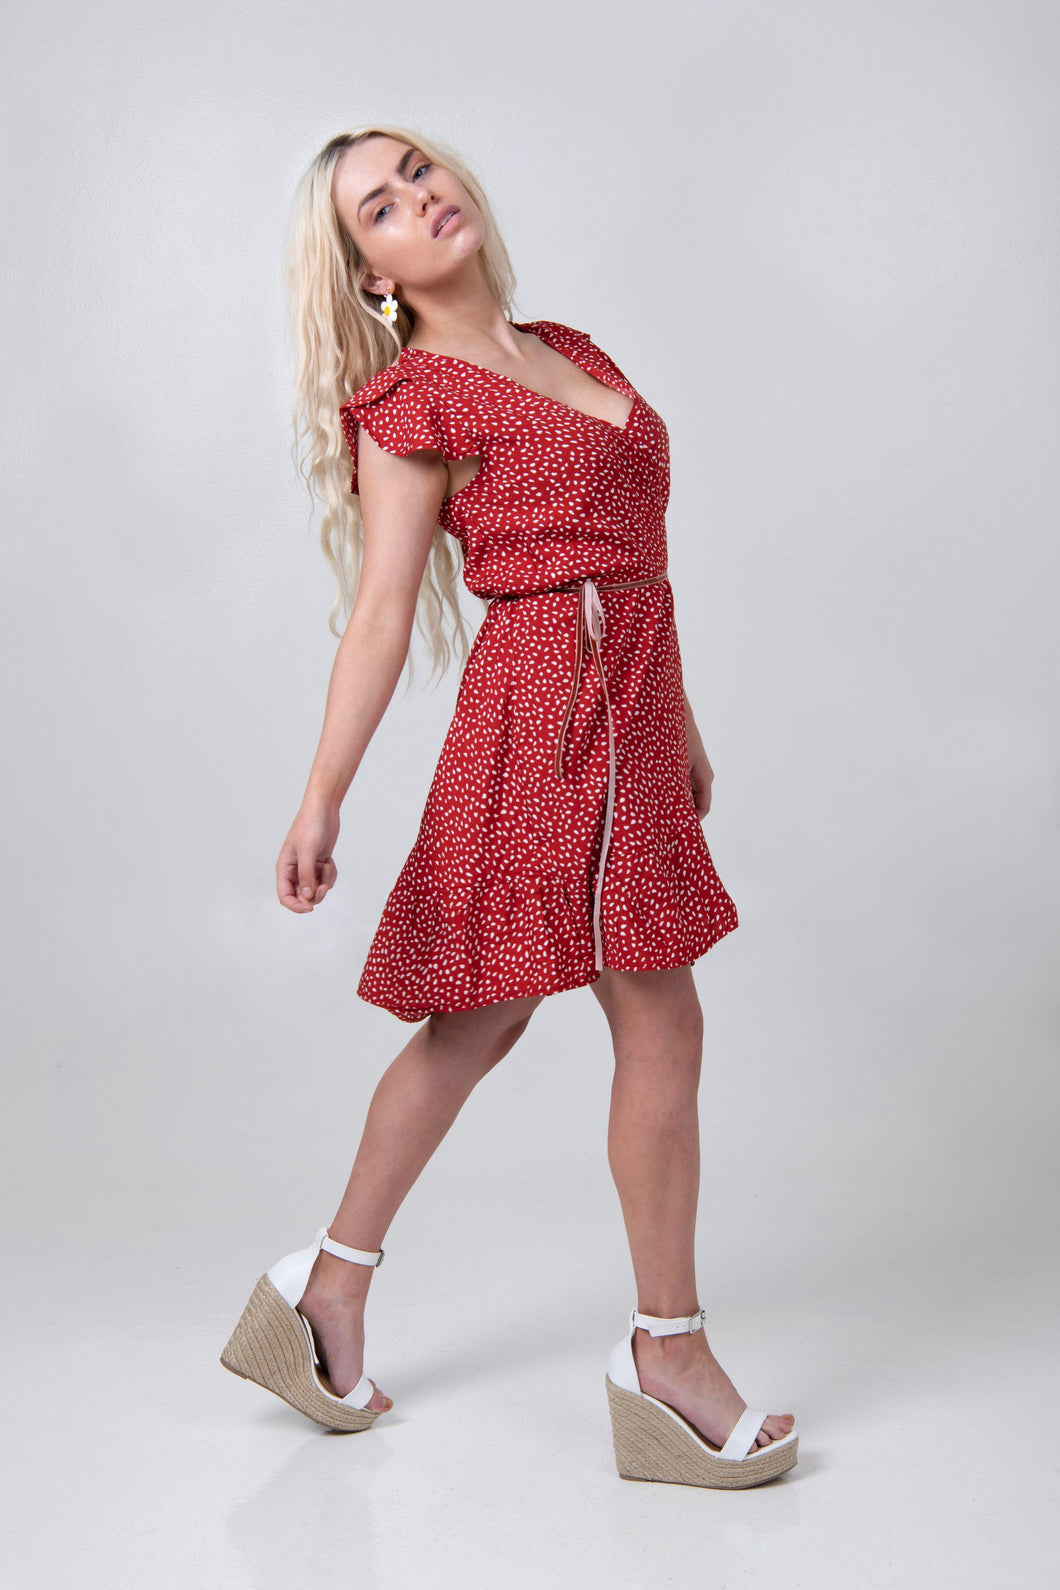 Petal Wrap Dress - Red Dotty - Differently